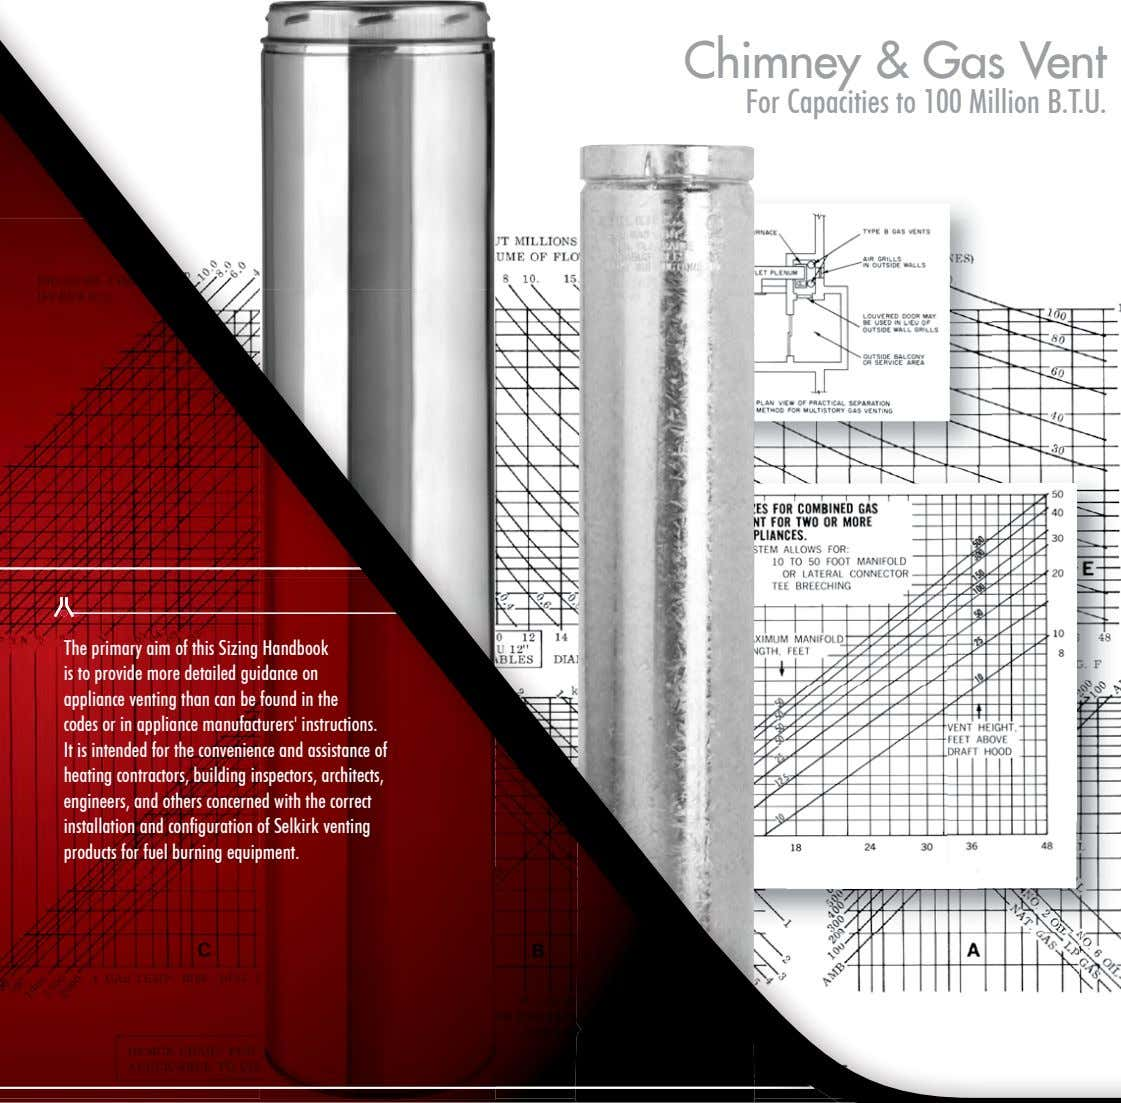 Chimney & Gas Vent For Capacities to 100 Million B.T.U. The primary aim of this